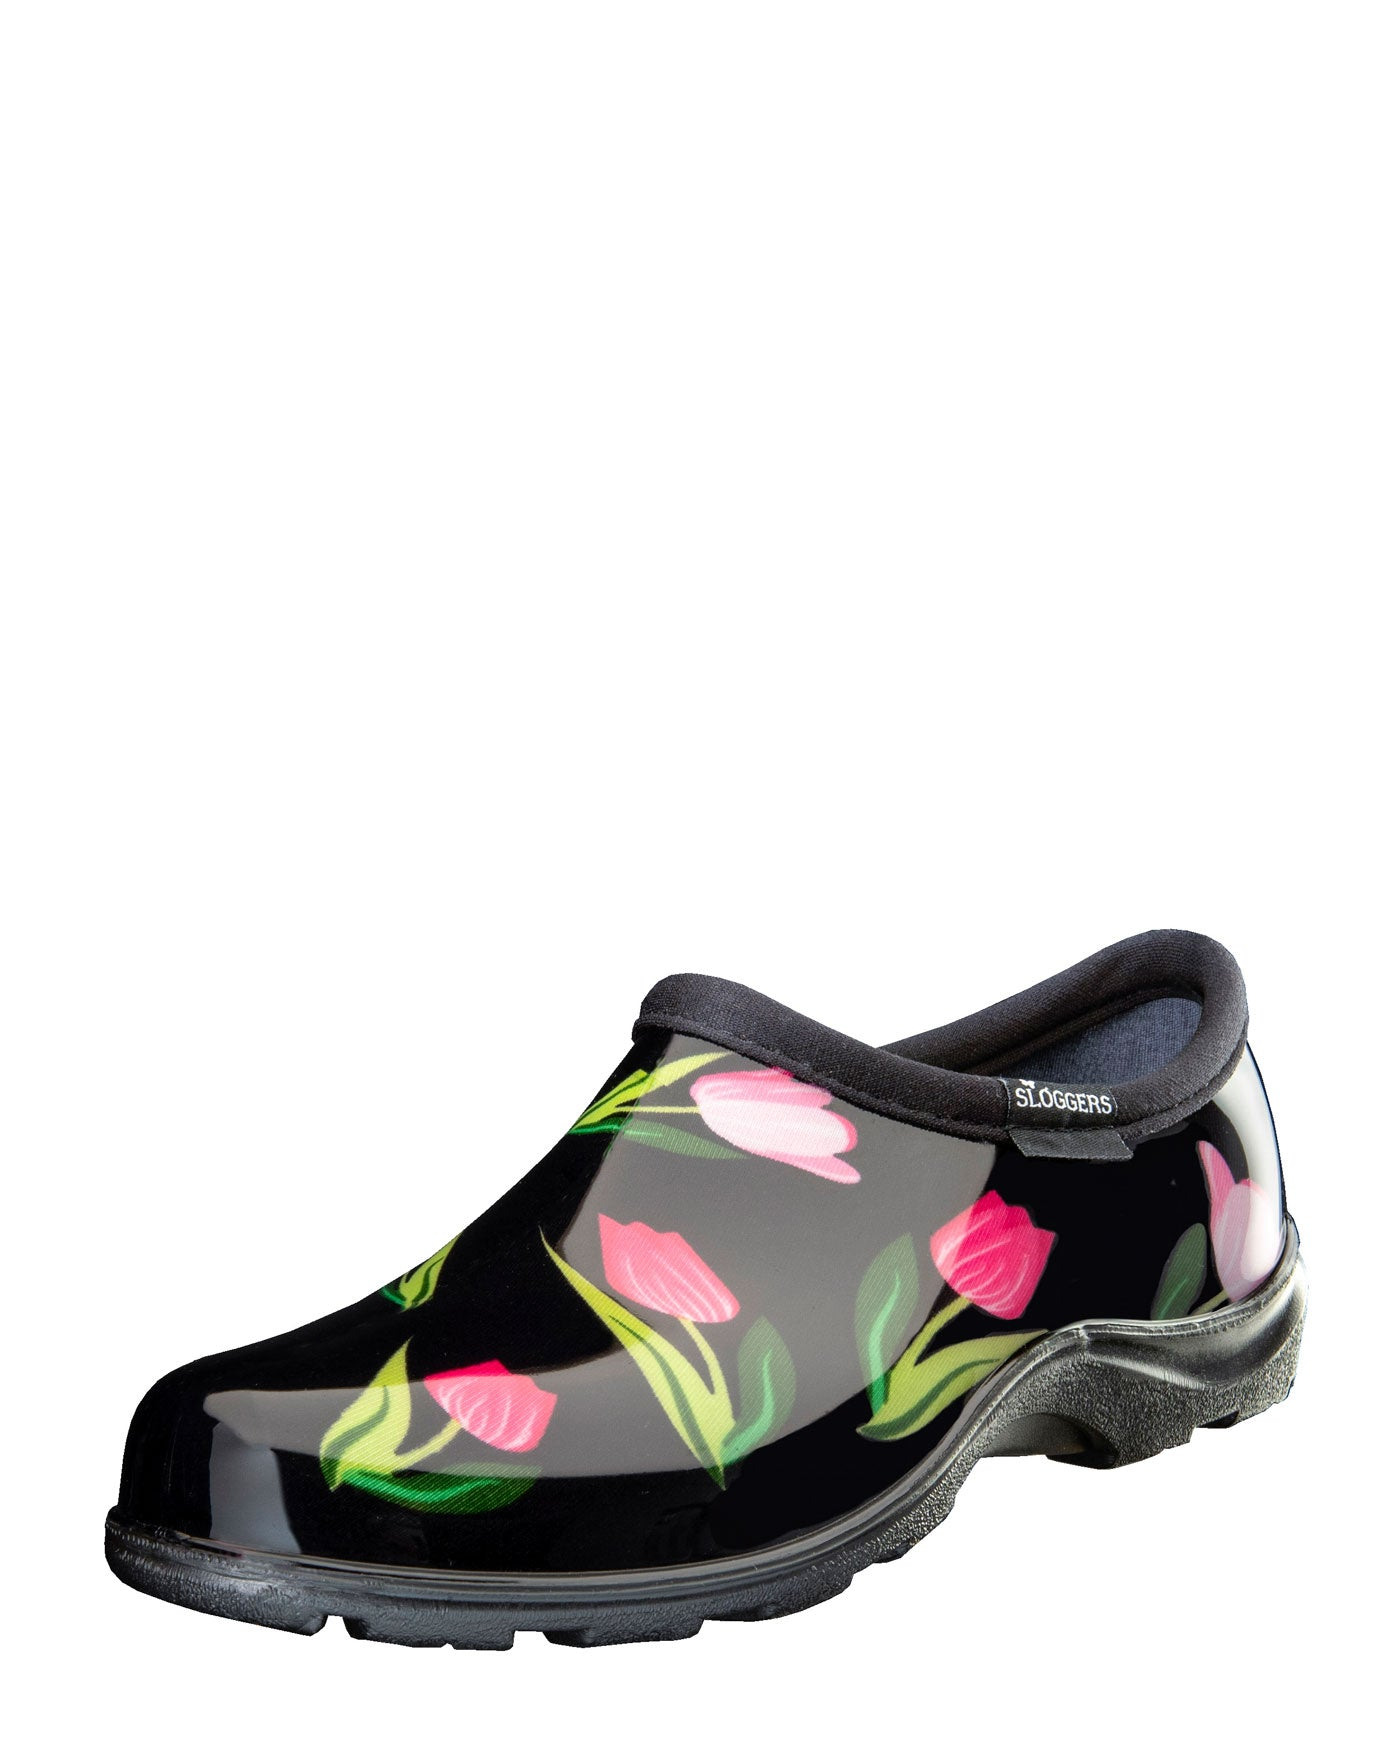 Splash Shoe Tulip Black